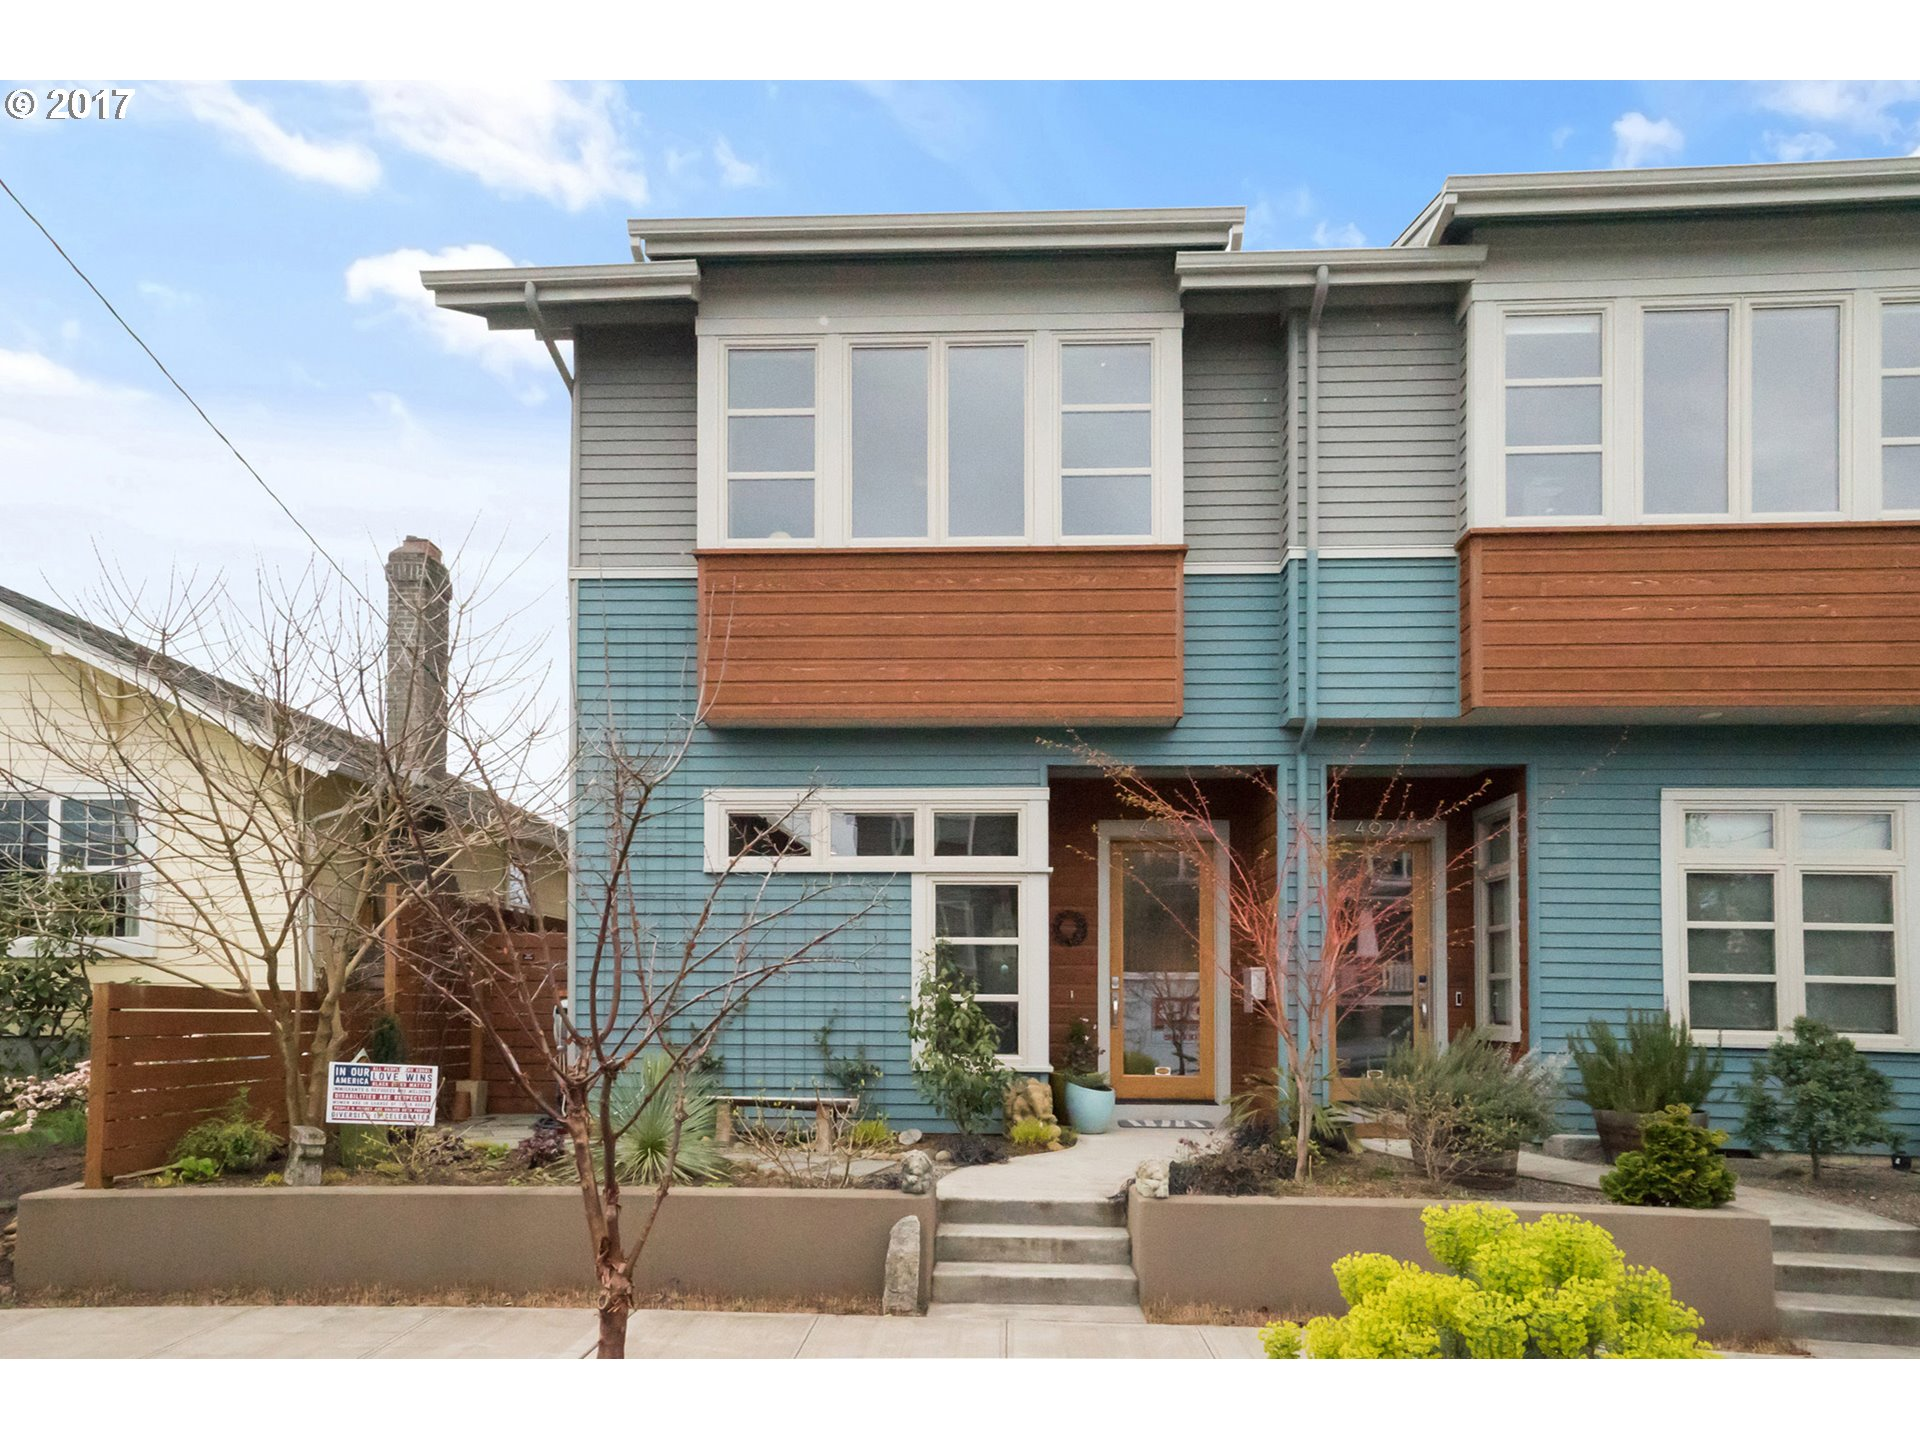 4915 ne 26th ave portland or 97211 mls 17651044 pdx listed